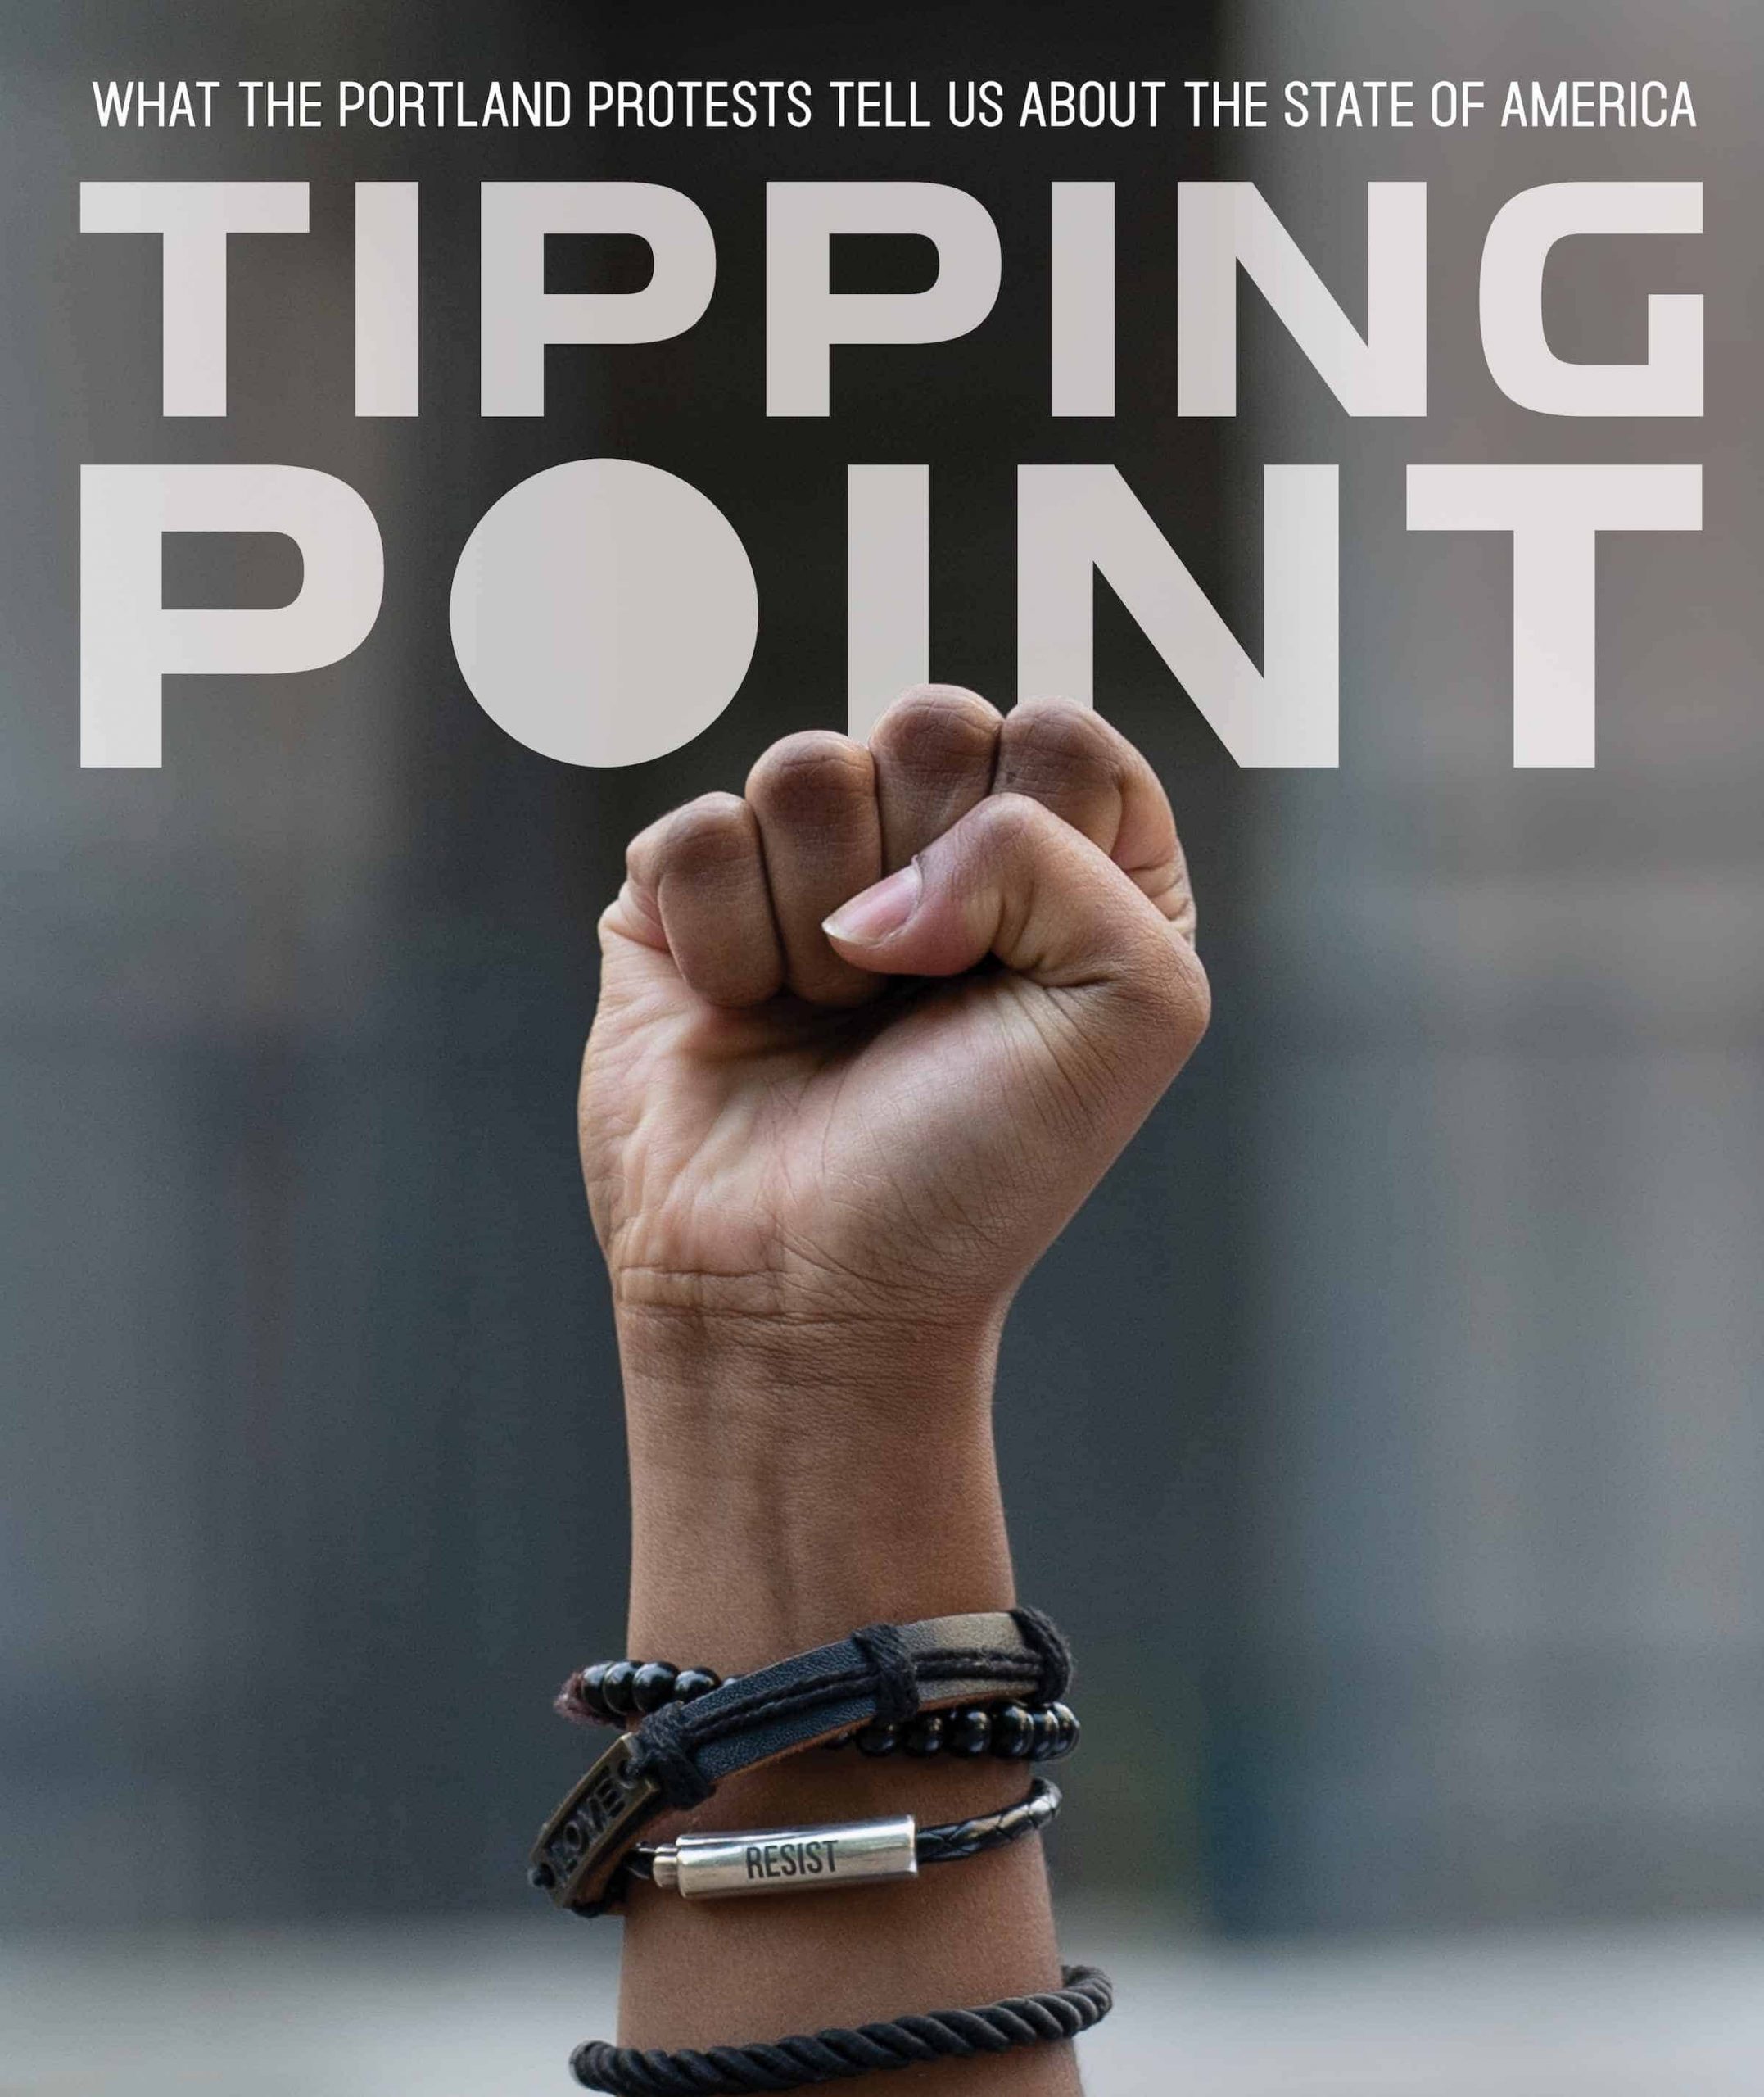 Tipping Point: What the Portland Protests Tell Us About America